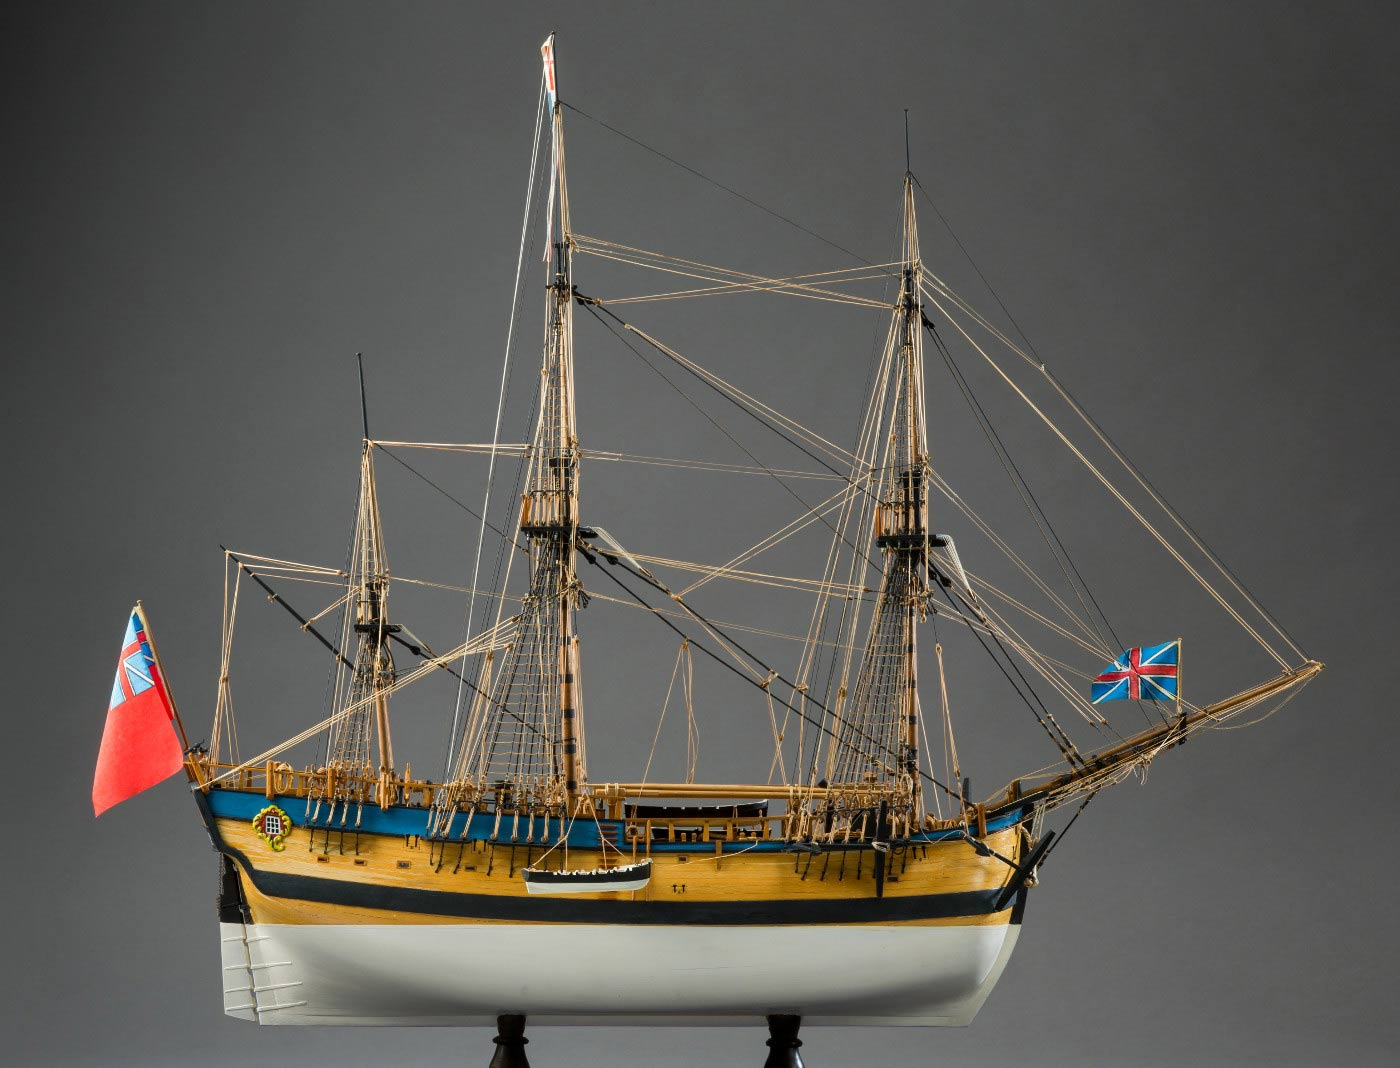 Side view of a model wooden sailing ship with a small boat partially lowered over the side. - click to view larger image